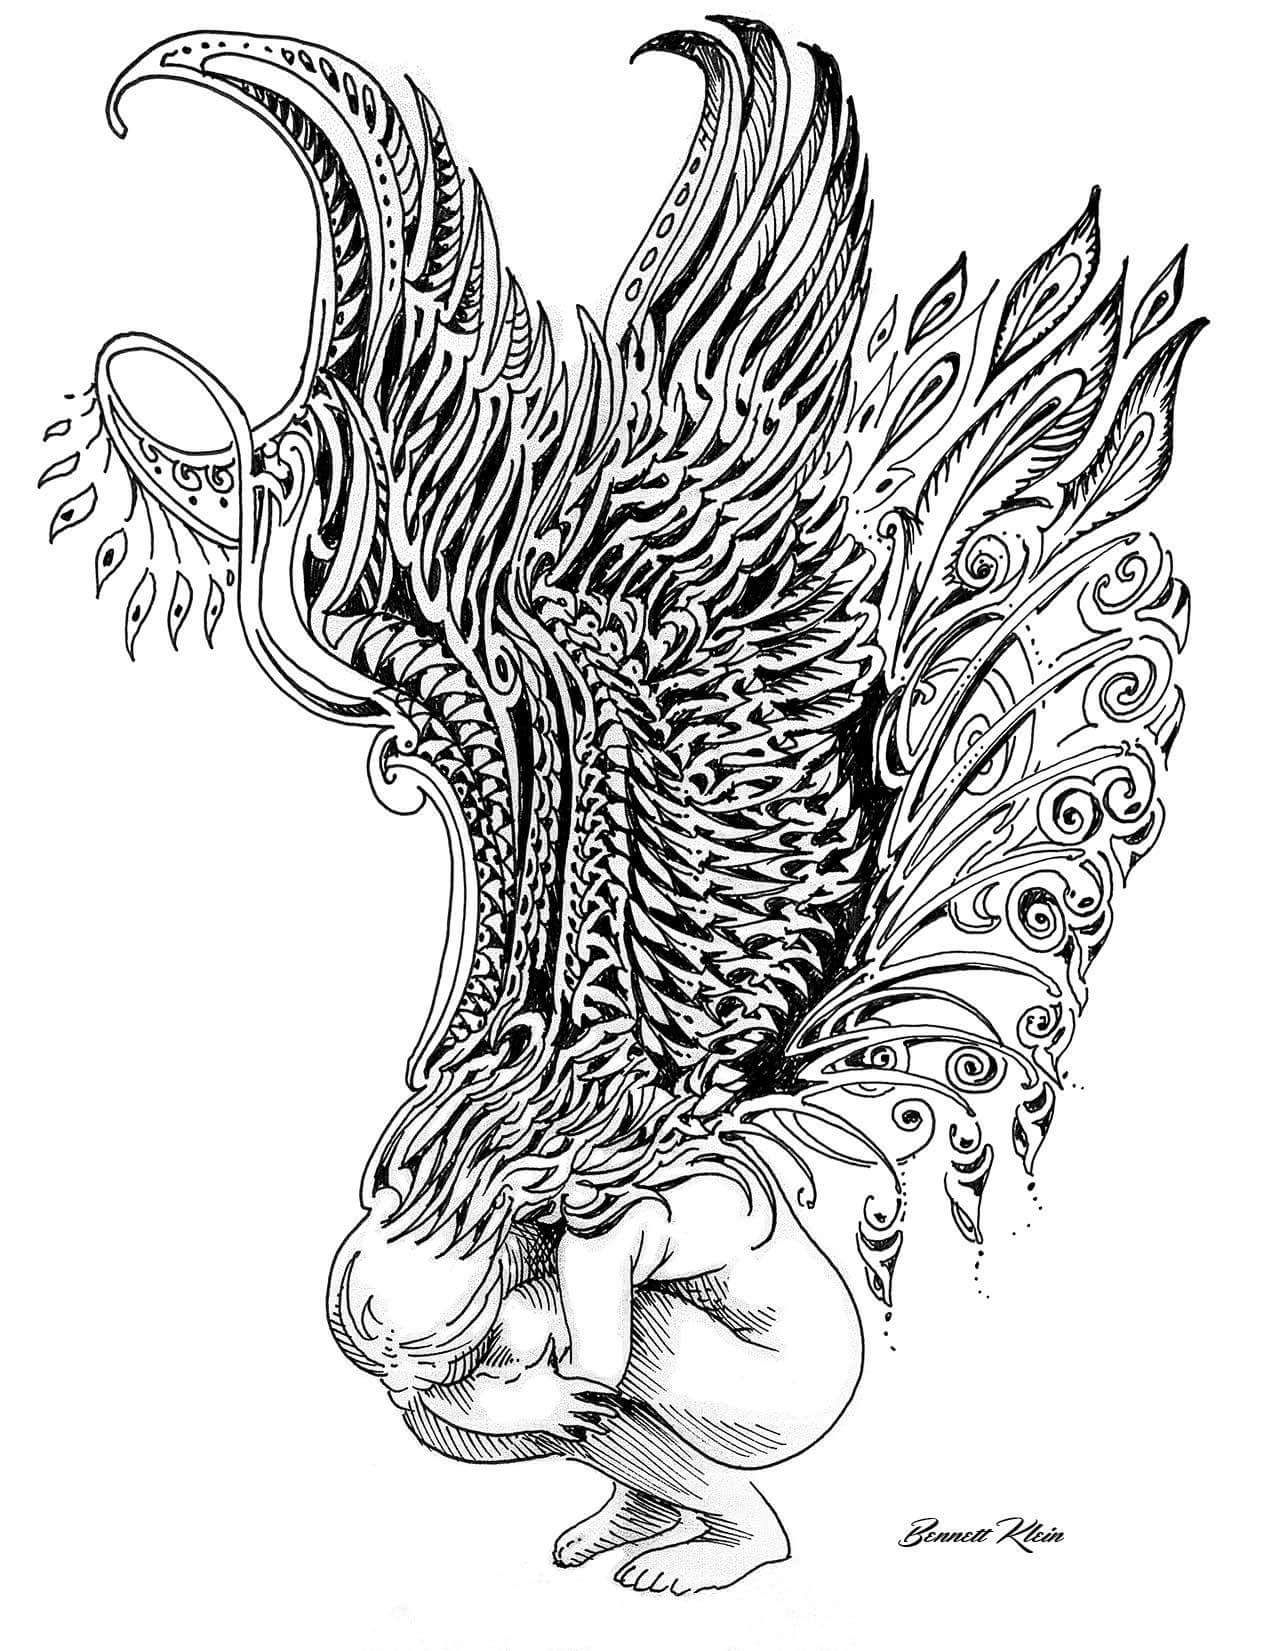 Bennett Klein Coloring Pages Animorphia Coloring Book Steampunk Coloring